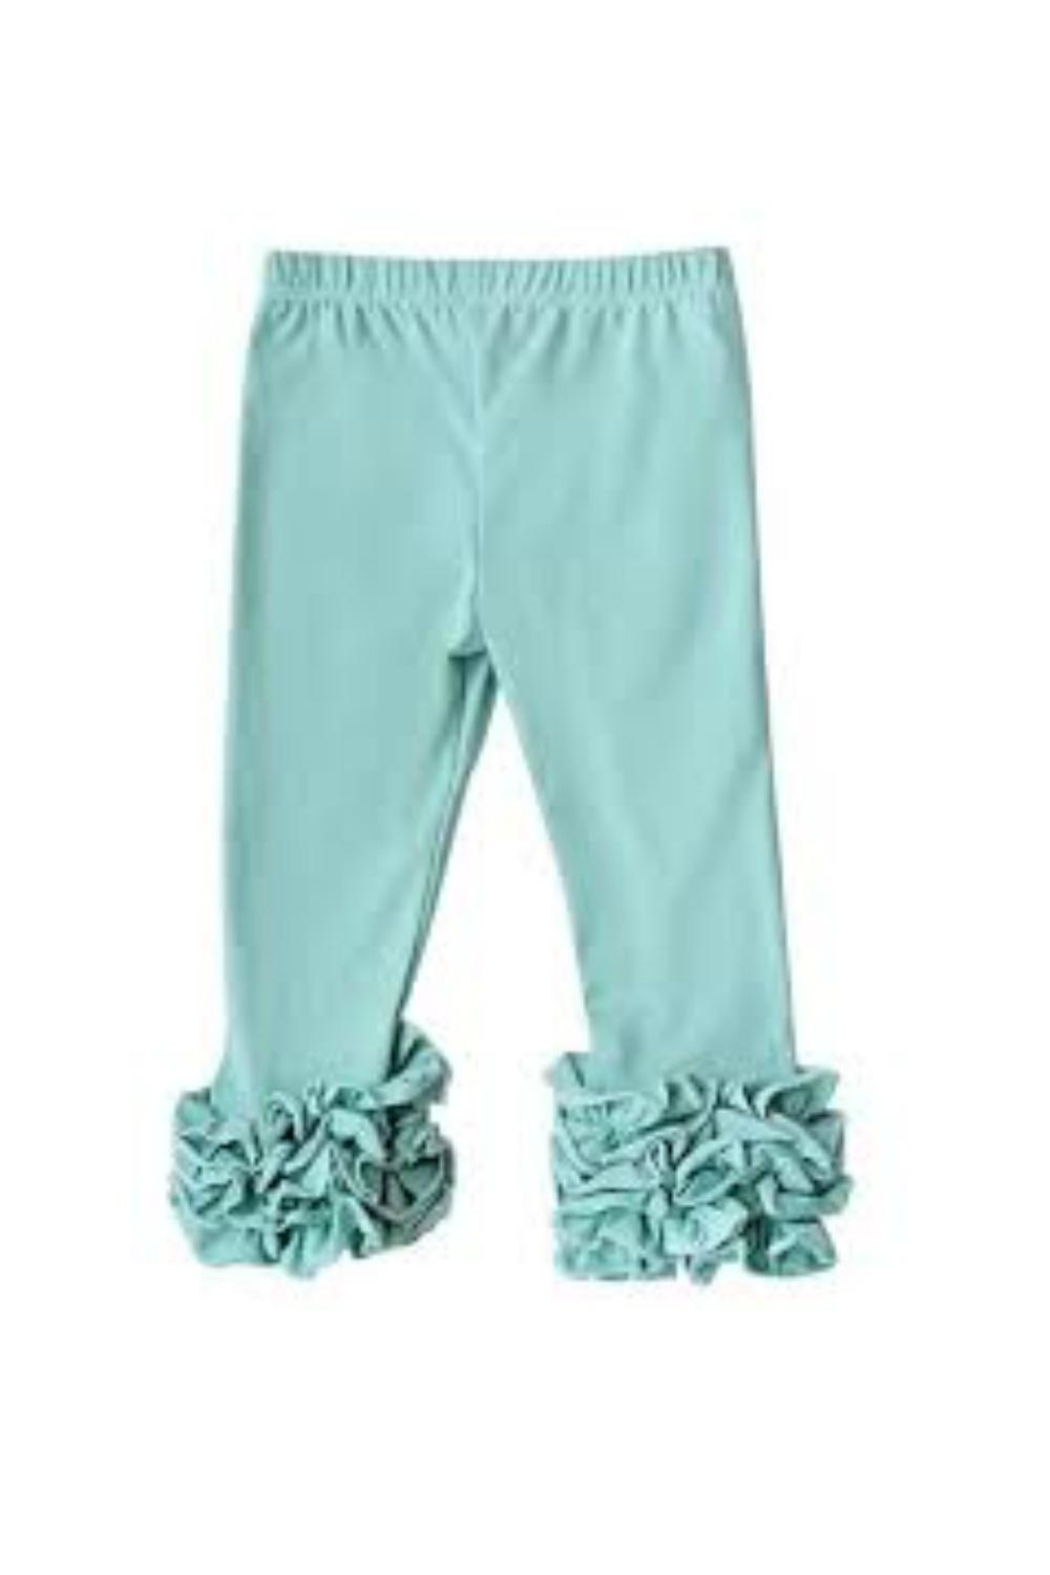 Bailey's Blossoms Sea Foam Leggings - Main Image